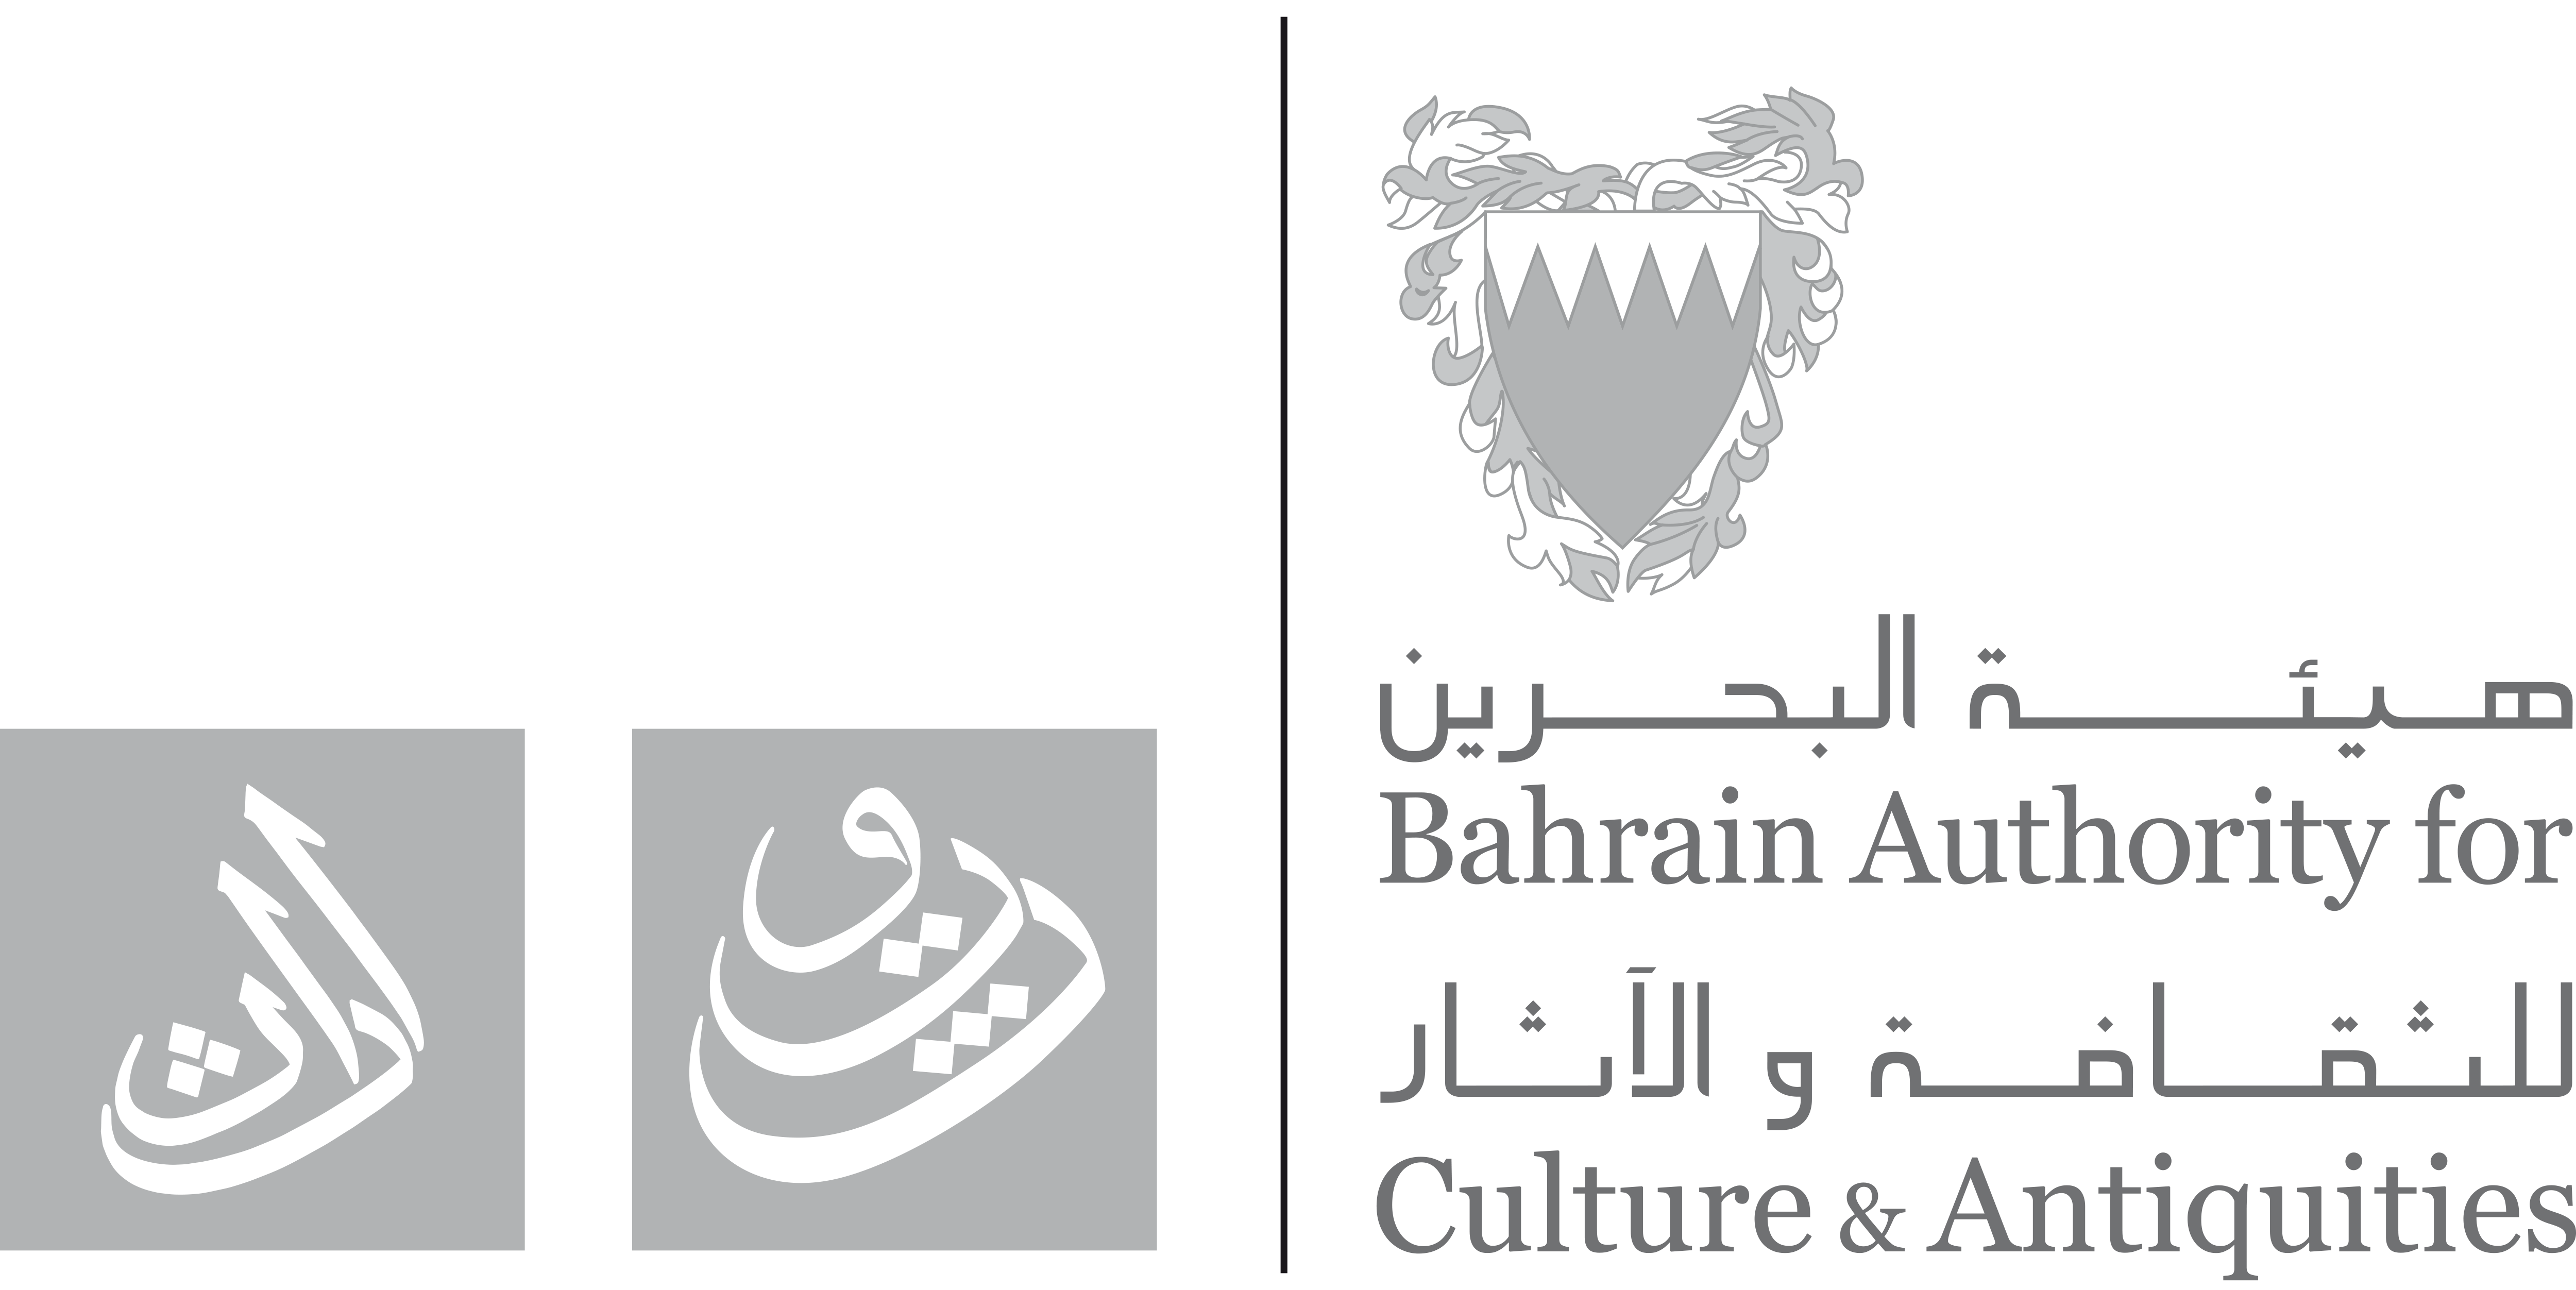 Bahrain Authority for Culture & Antiquities